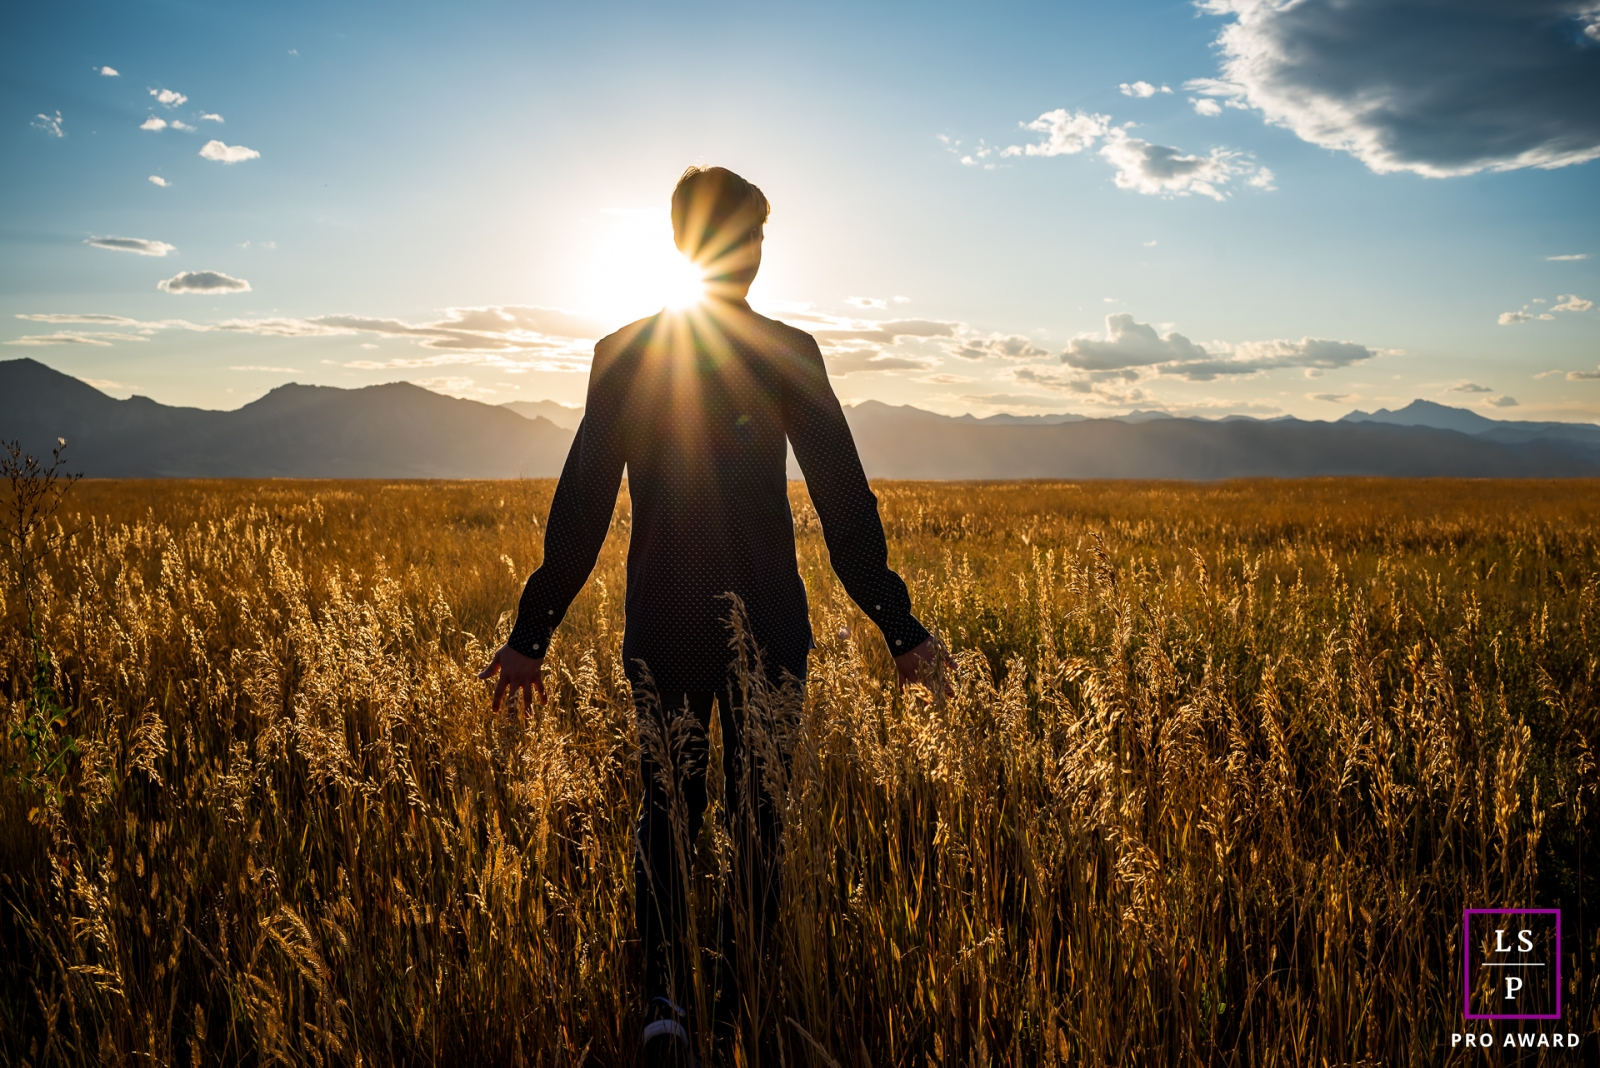 A Boulder High school senior boy poses in the golden light in front of the rocky mountains during a lifestyle portrait shoot in Colorado